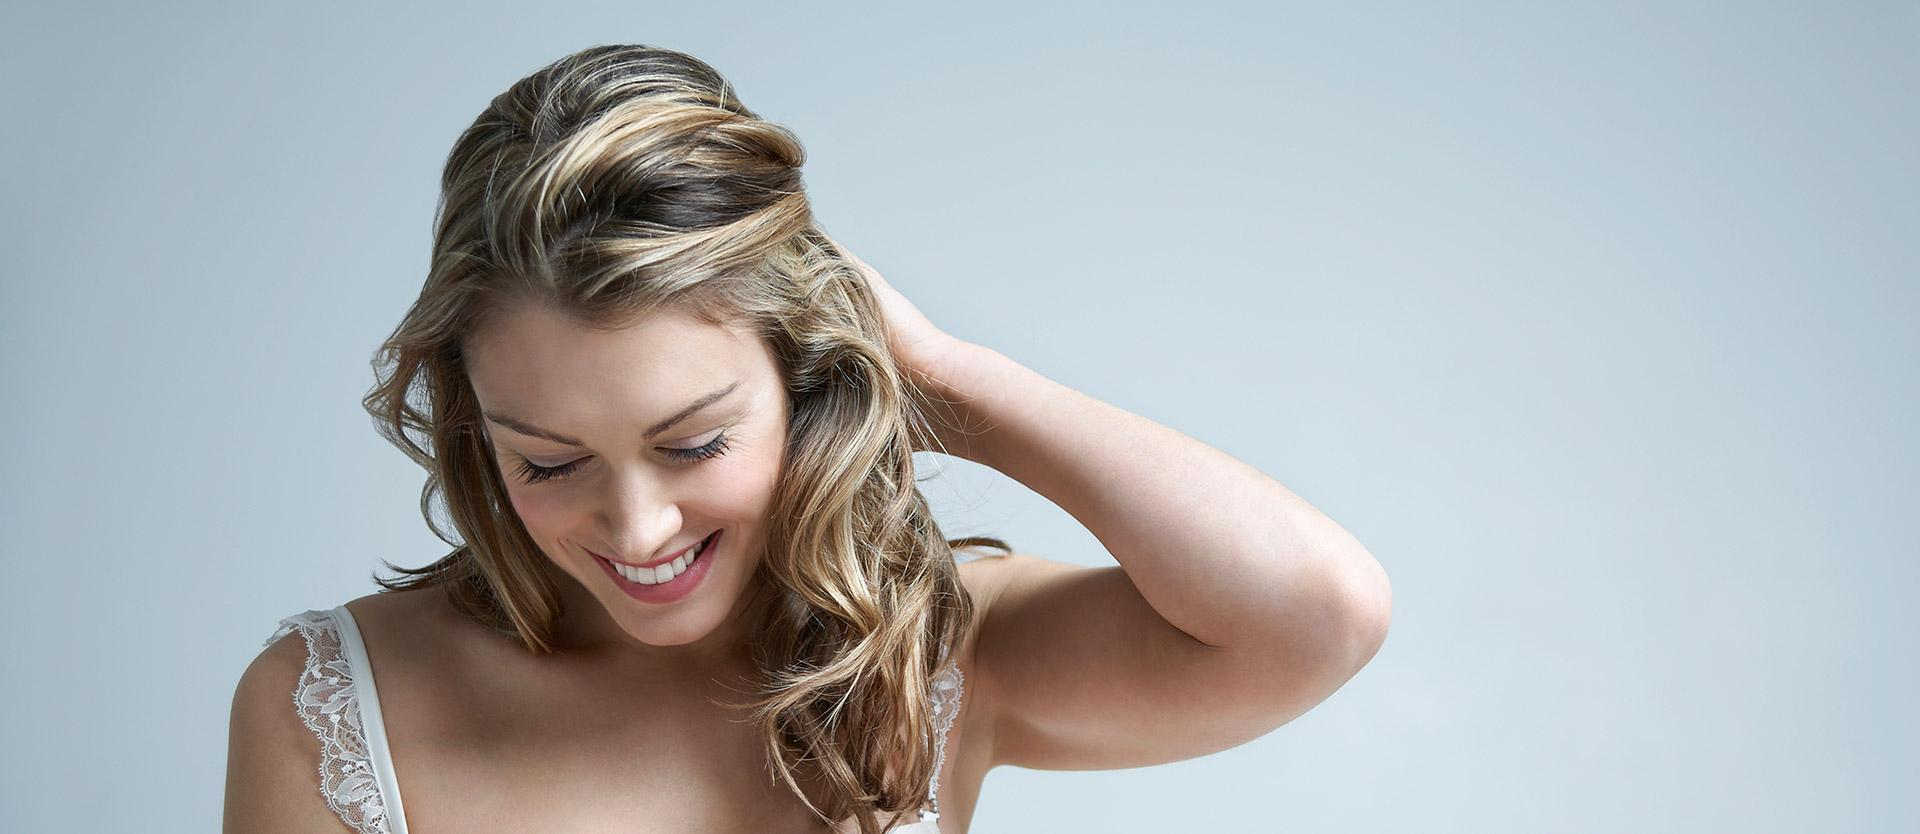 Surgical Hair Loss Solutions For Women